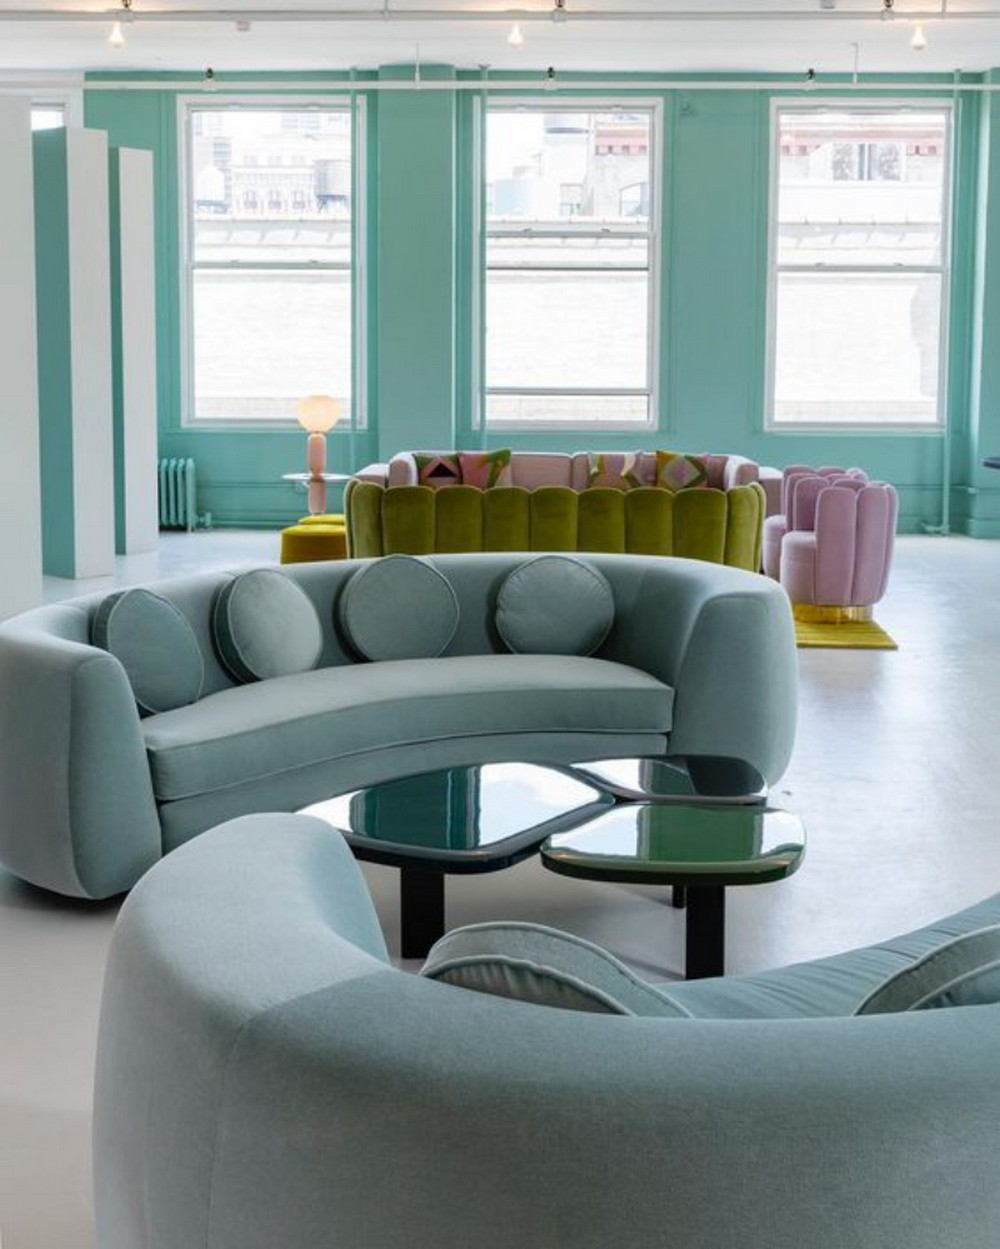 design trends Check out some of the best interior design trends of the USA Ralph Pucci1